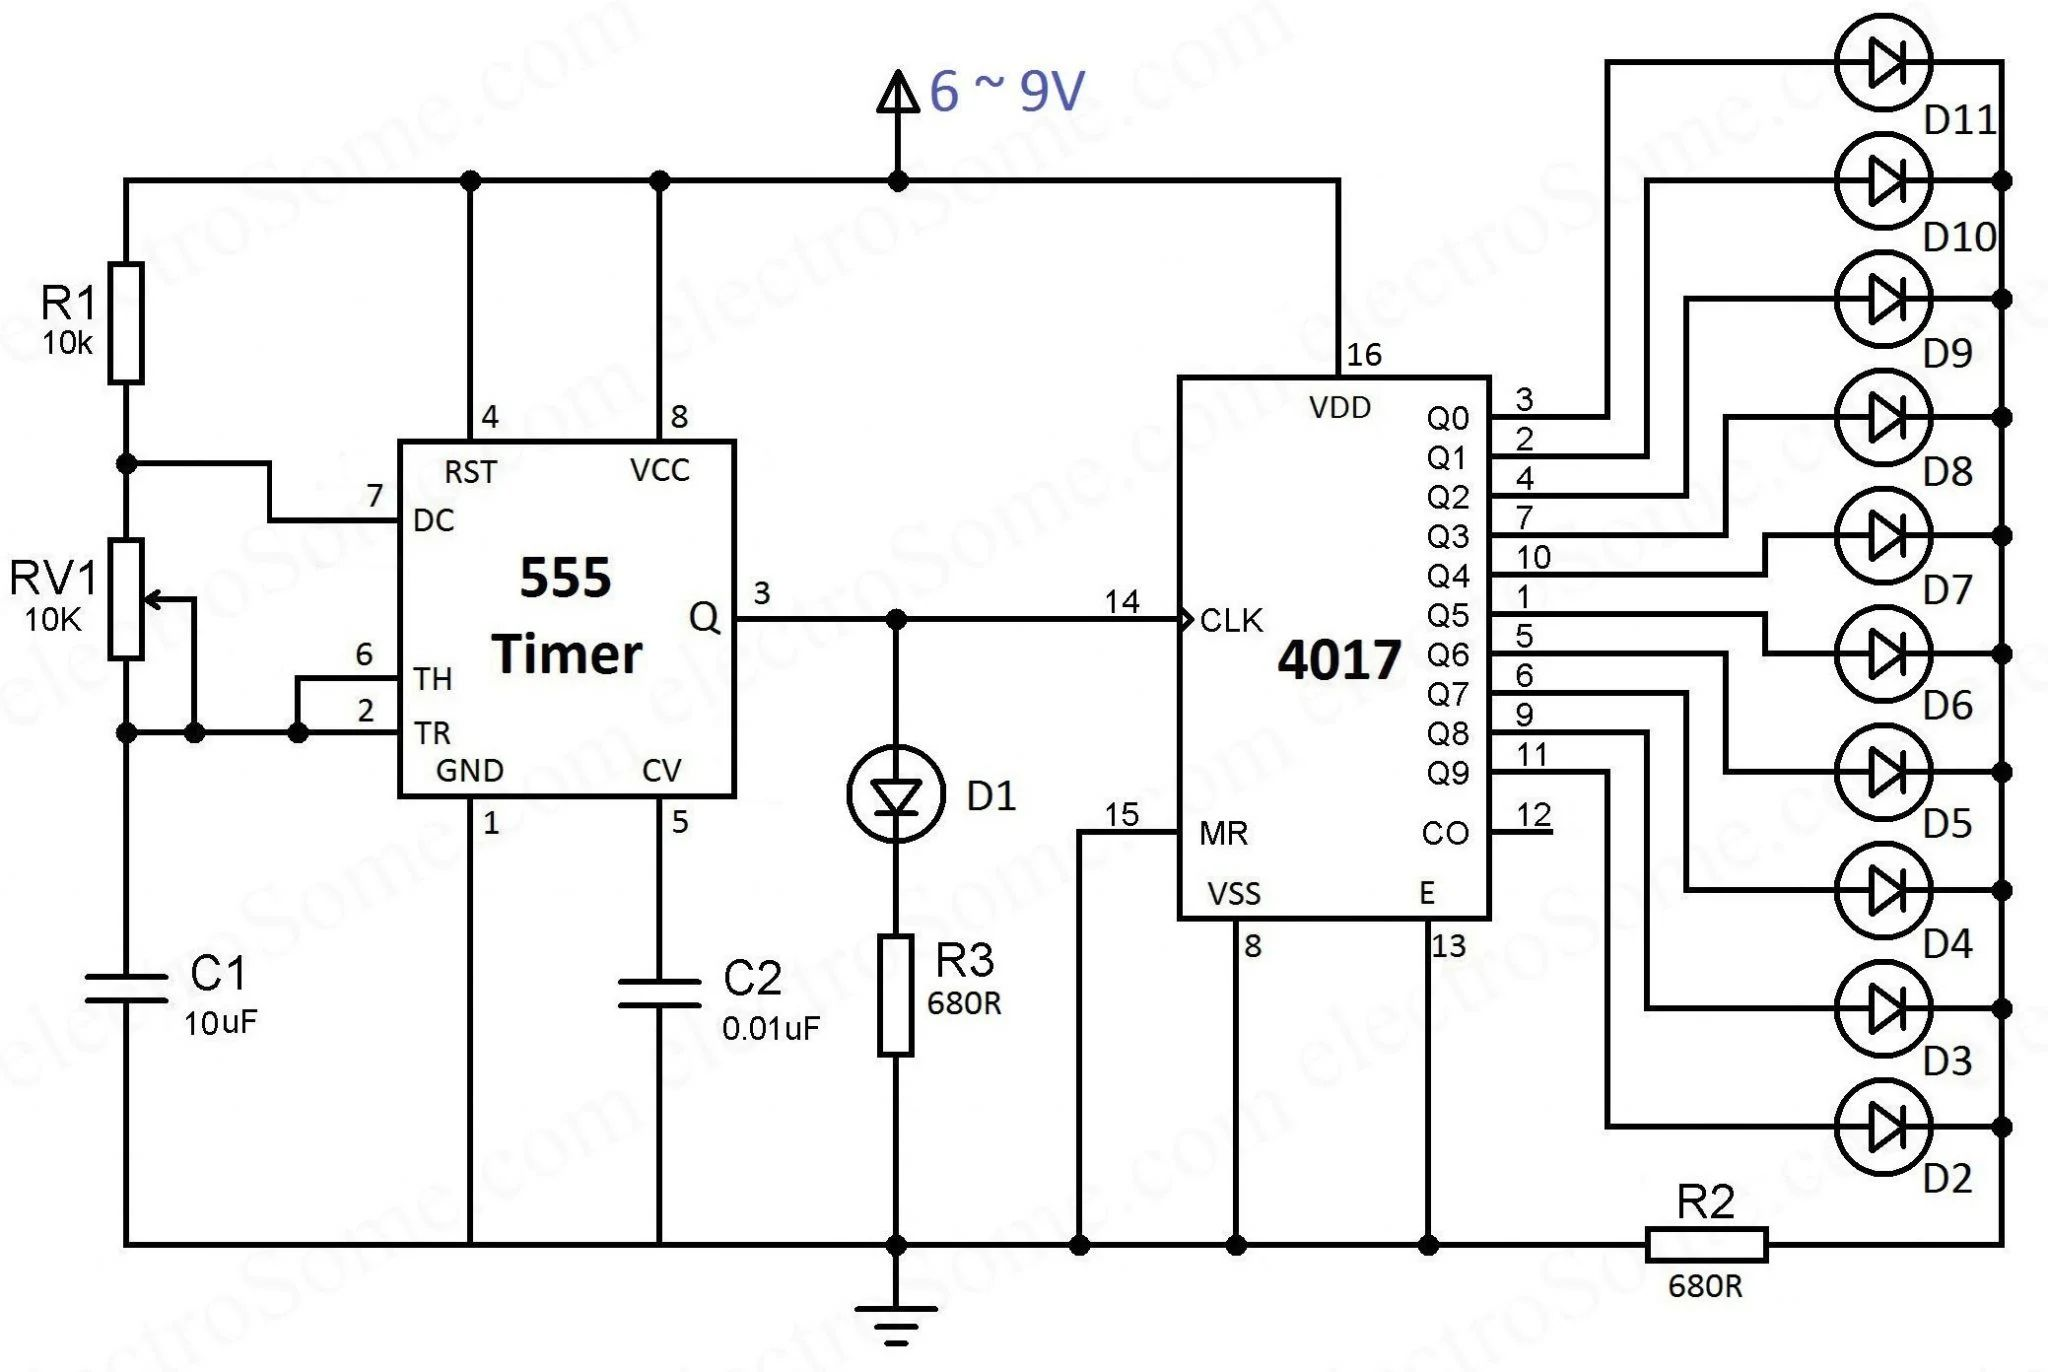 knight rider led circuit diagram schematics